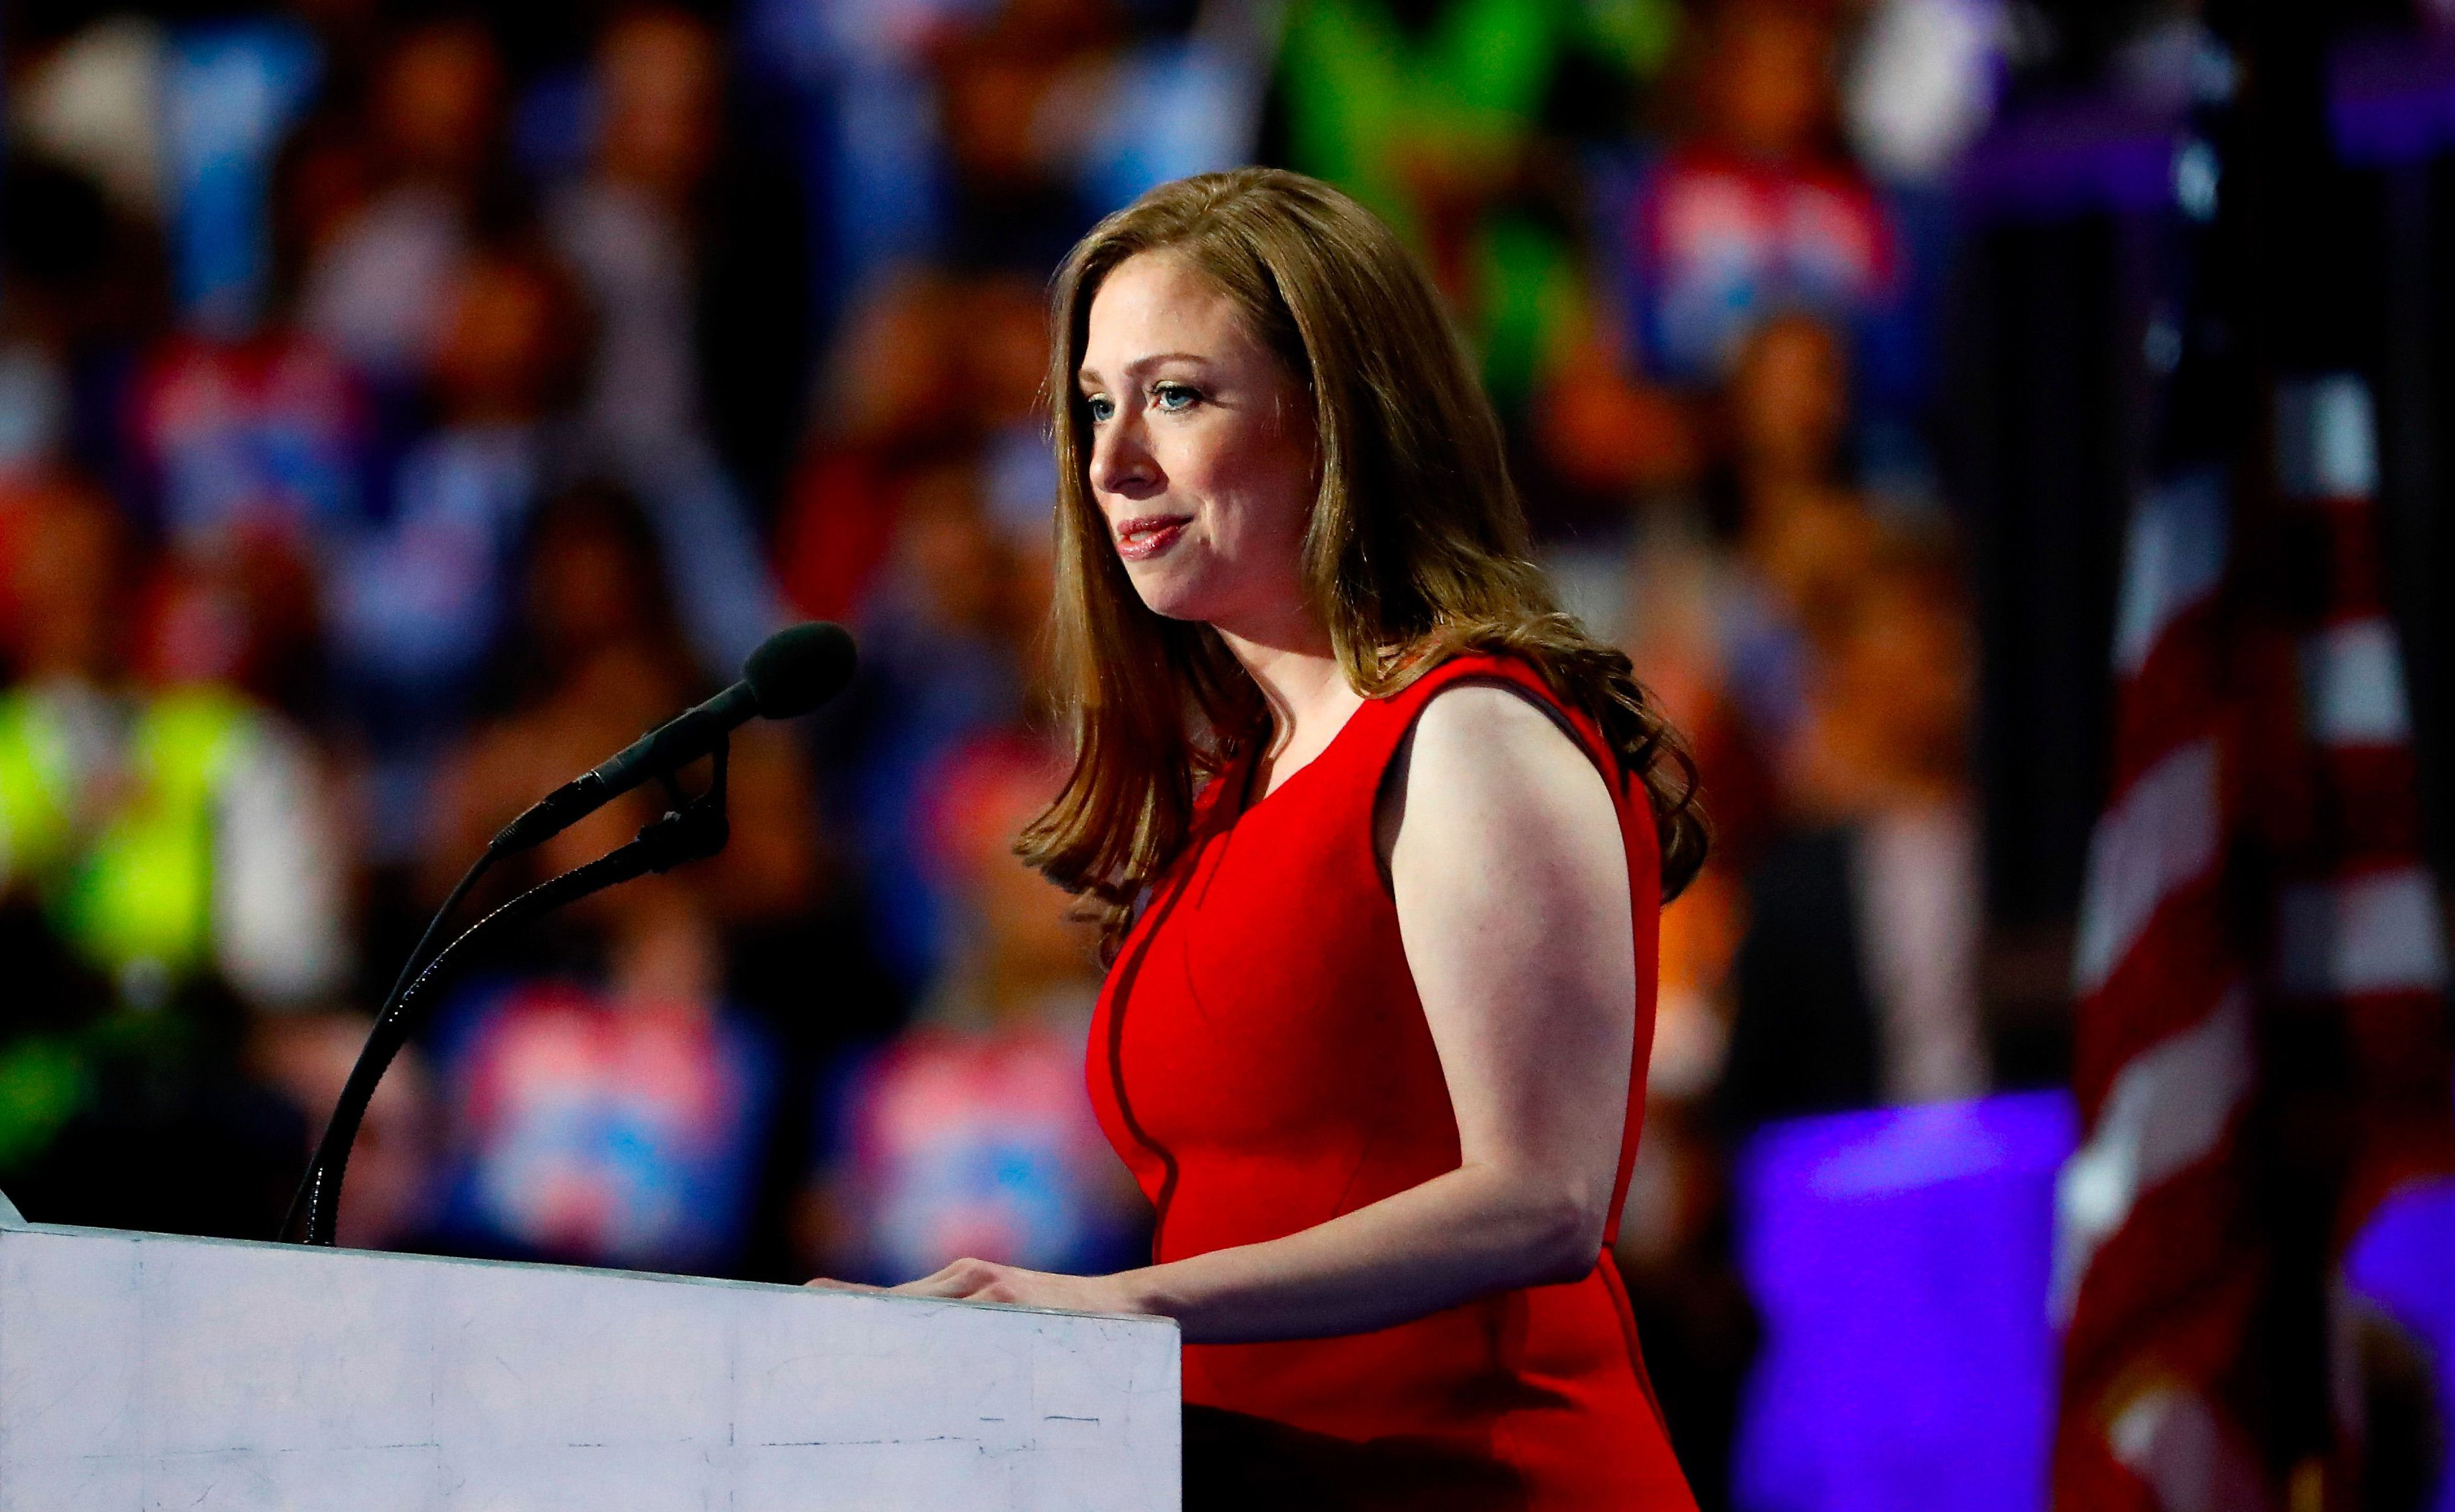 Chelsea Clinton talks during the Democratic National Convention, July 28, 2016 in Philadelphia, Pennsylvania.